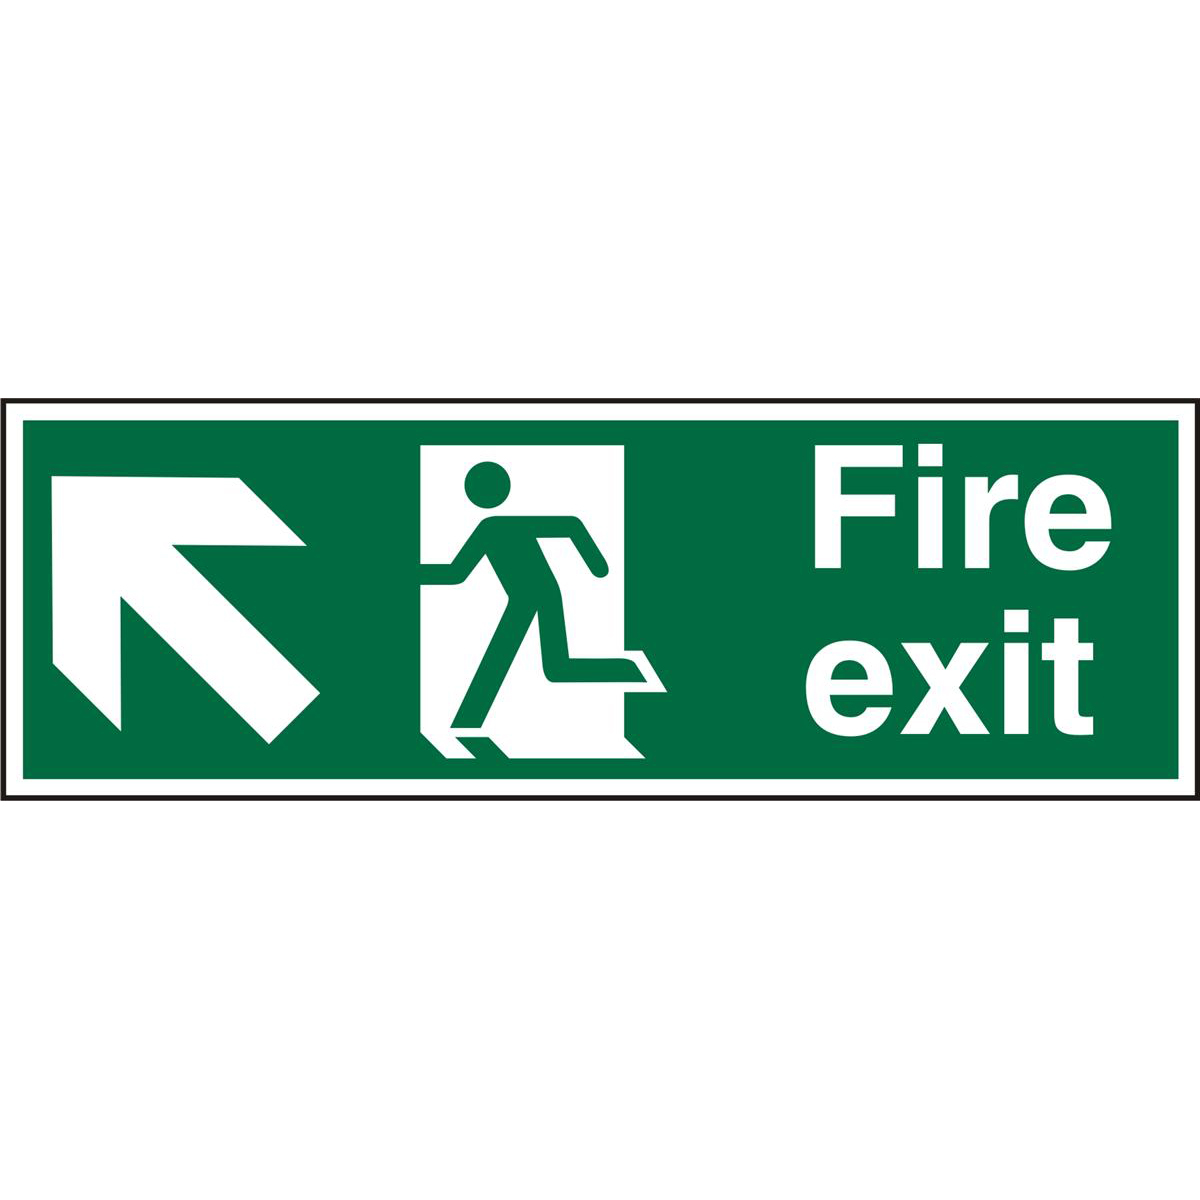 Safe Sign 600x200 1mm FireExit Man Running Left&Arrow tlhc Ref SP317SRP600x200 Up to 10 Day Leadtime